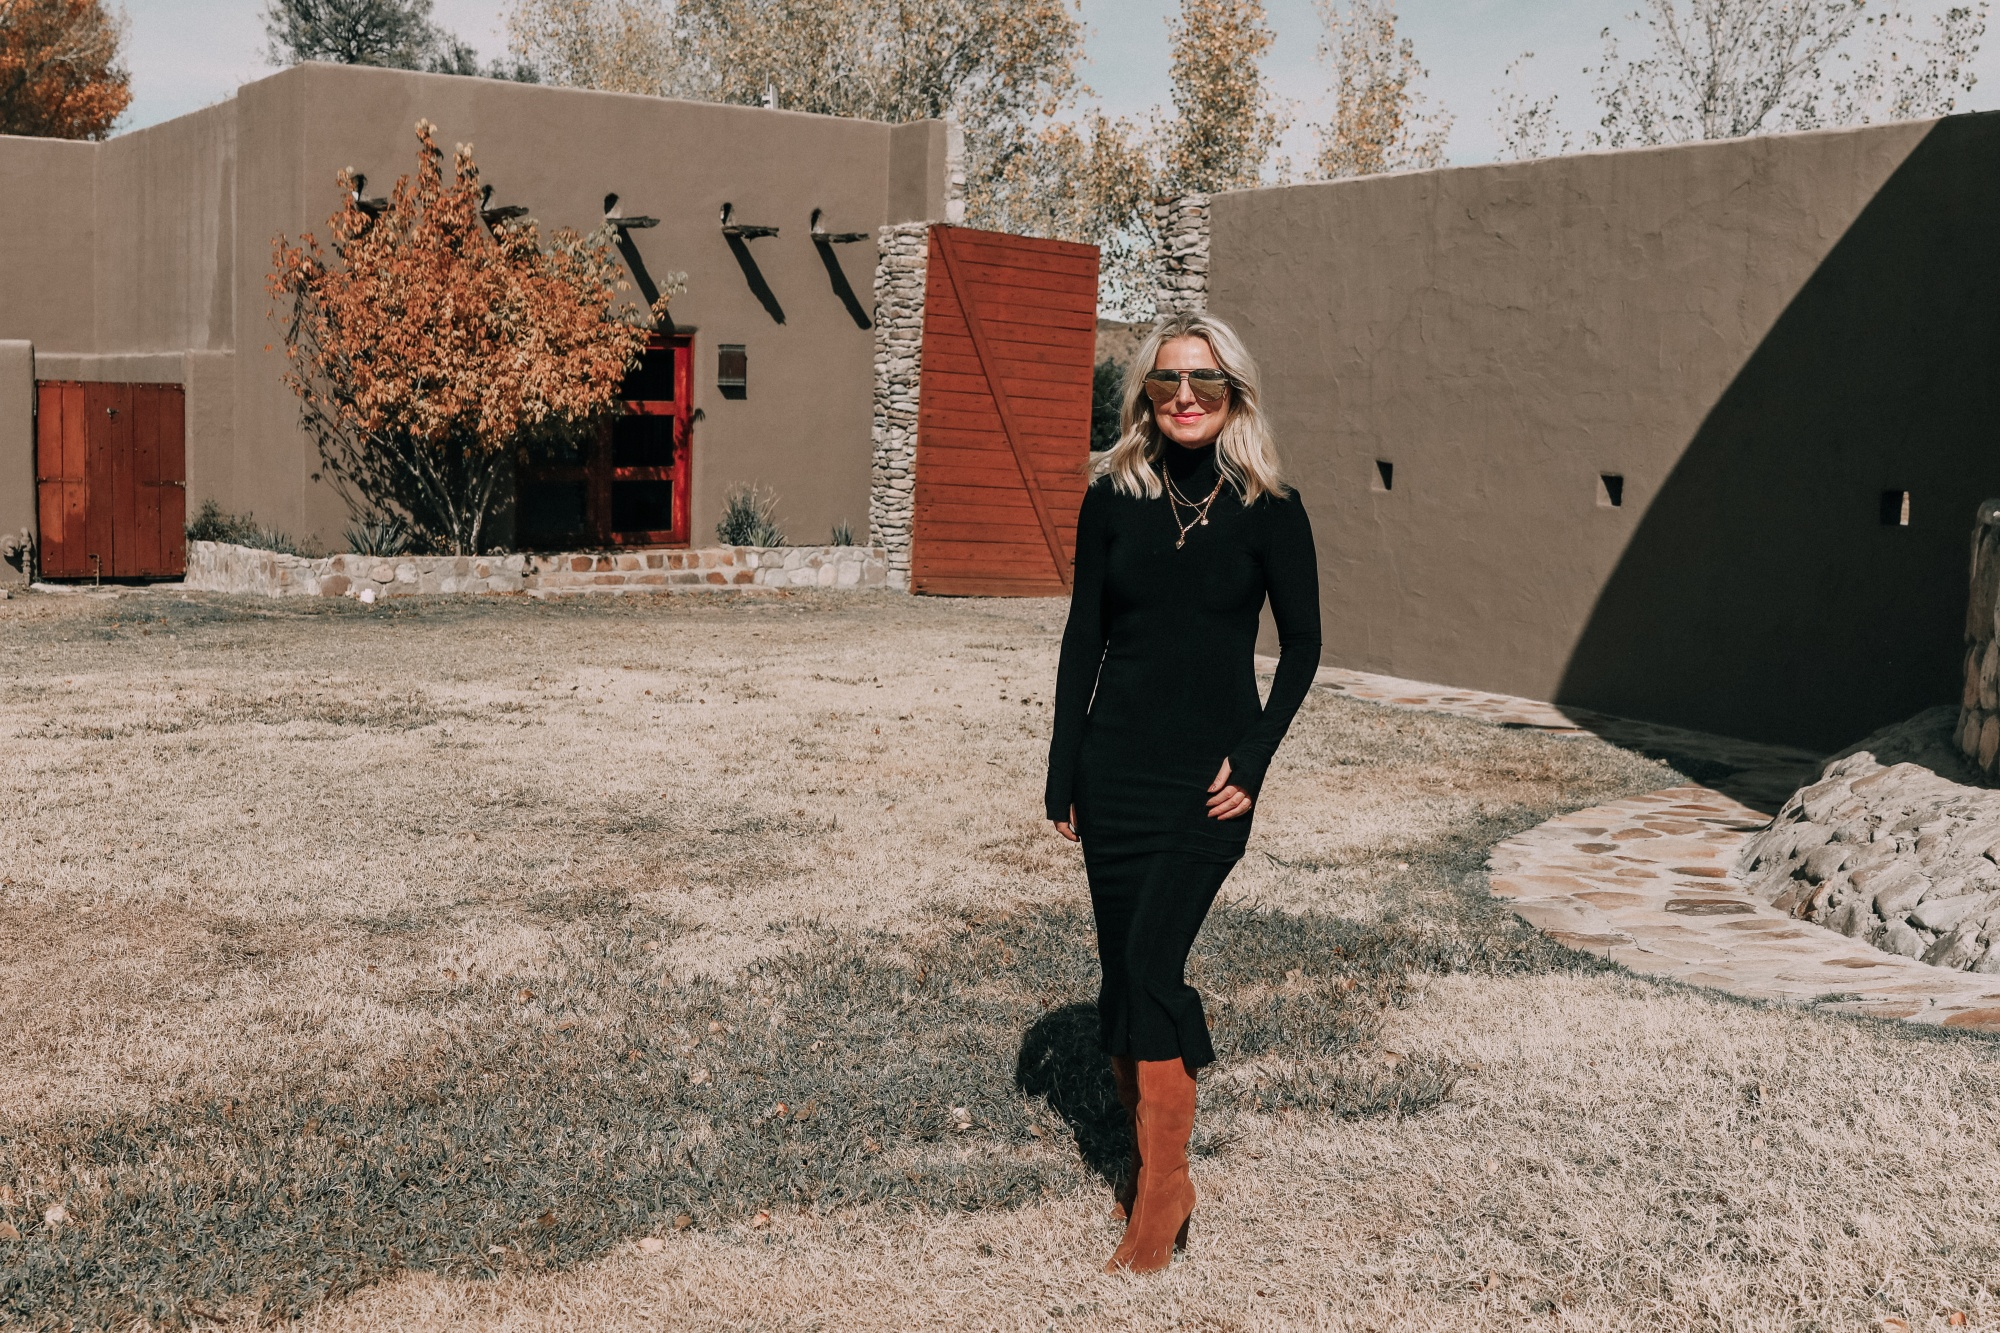 Sweater Dress, Fashion blogger Erin Busbee of BusbeeStyle.com wearing a black sweater dress by Norma Kamali with brown suede knee high boots by Vince Camuto in West Texas